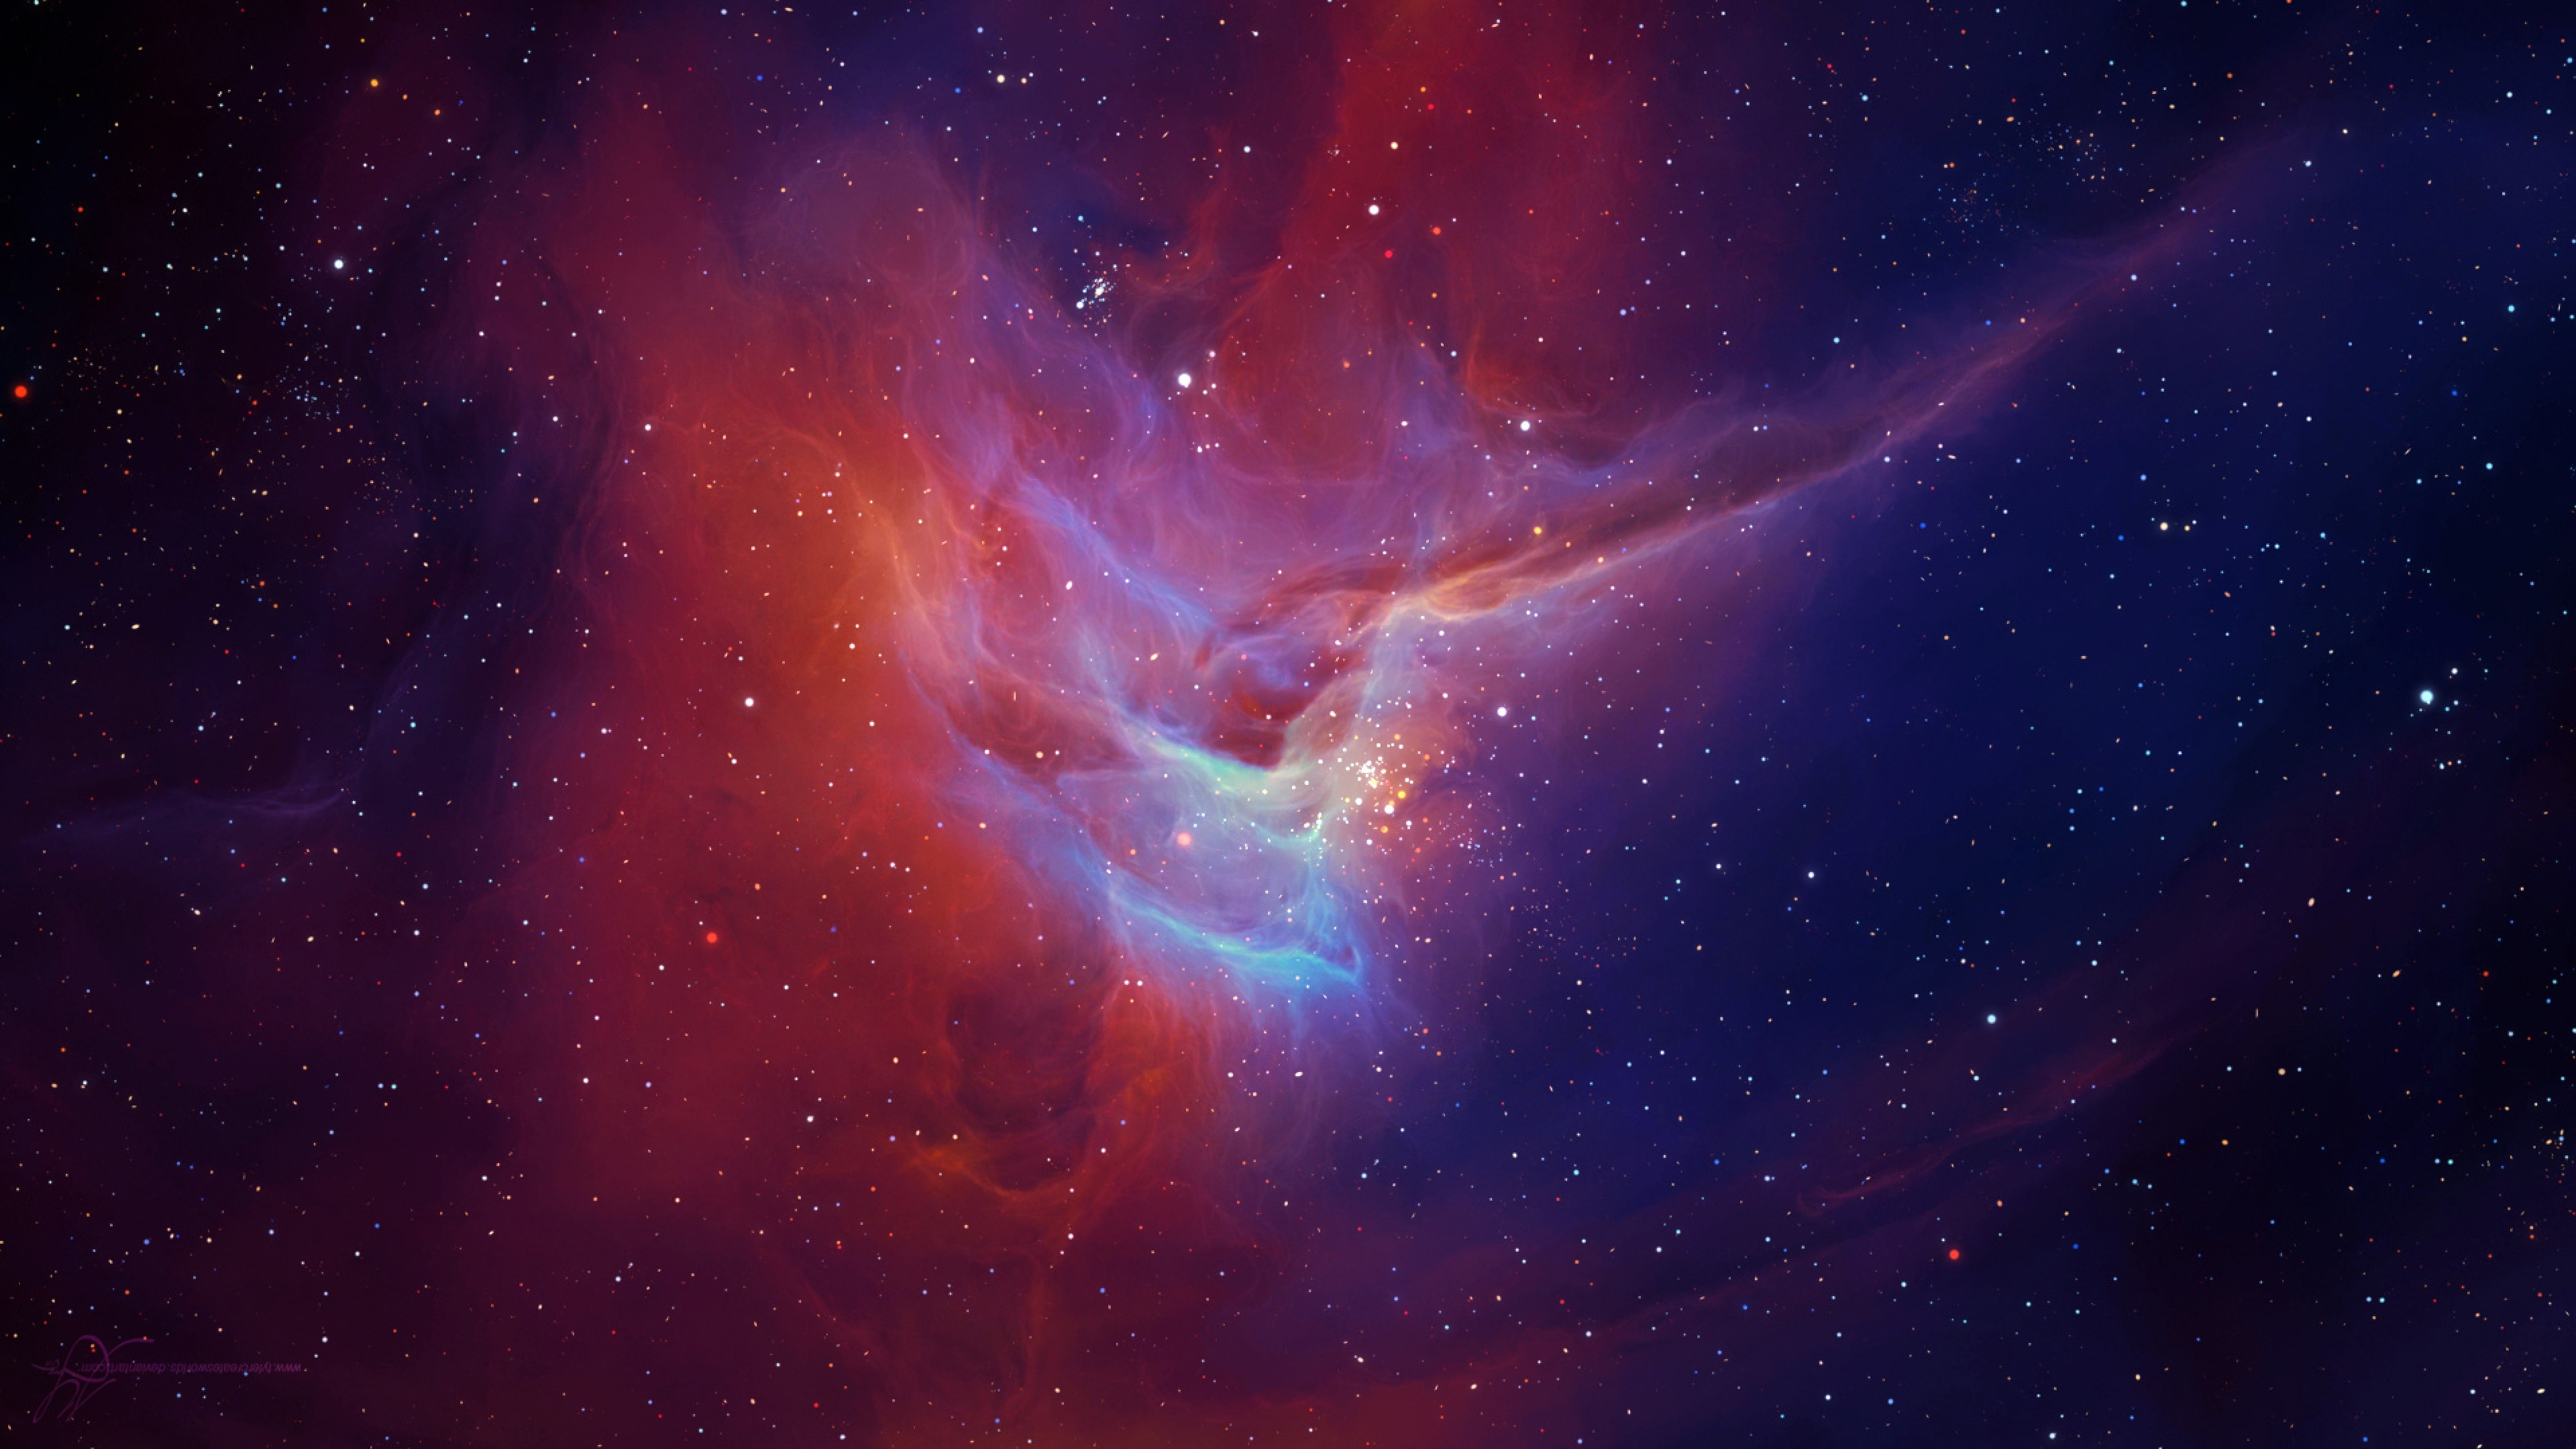 star nebula glow 4k 1546278625 - Star Nebula Glow 4k - star wallpapers, glow wallpapers, digital universe wallpapers